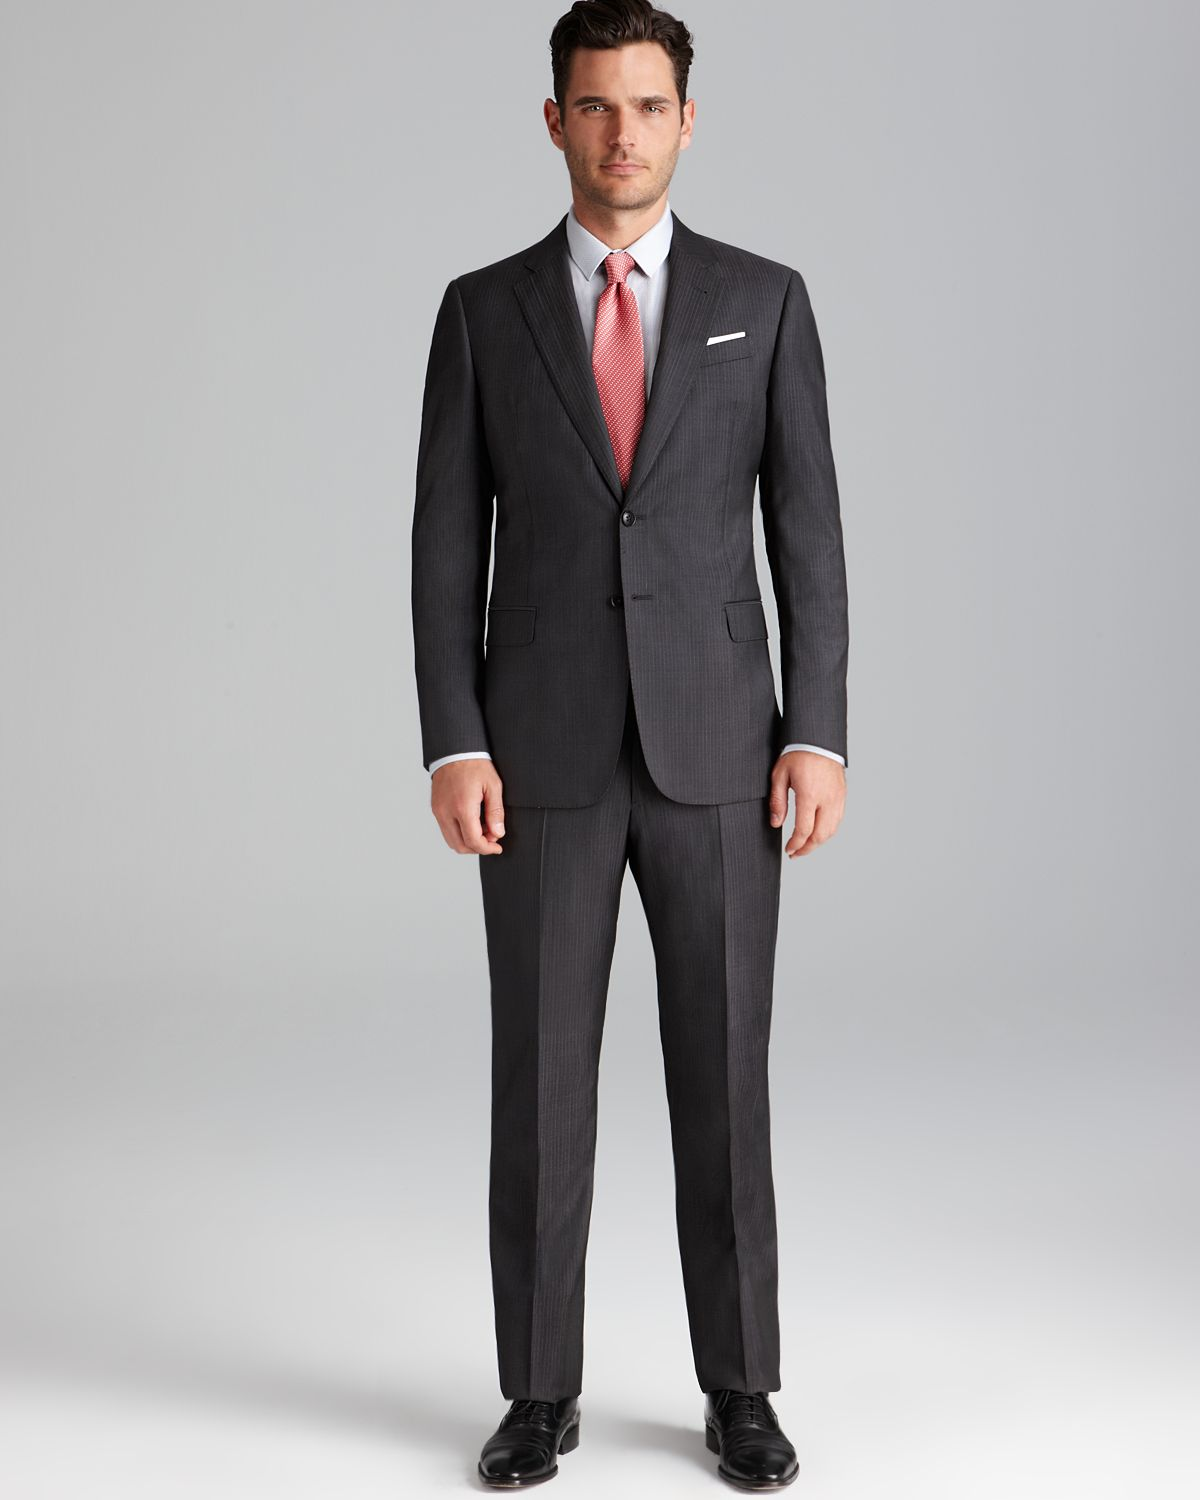 Classic Fit Suit example